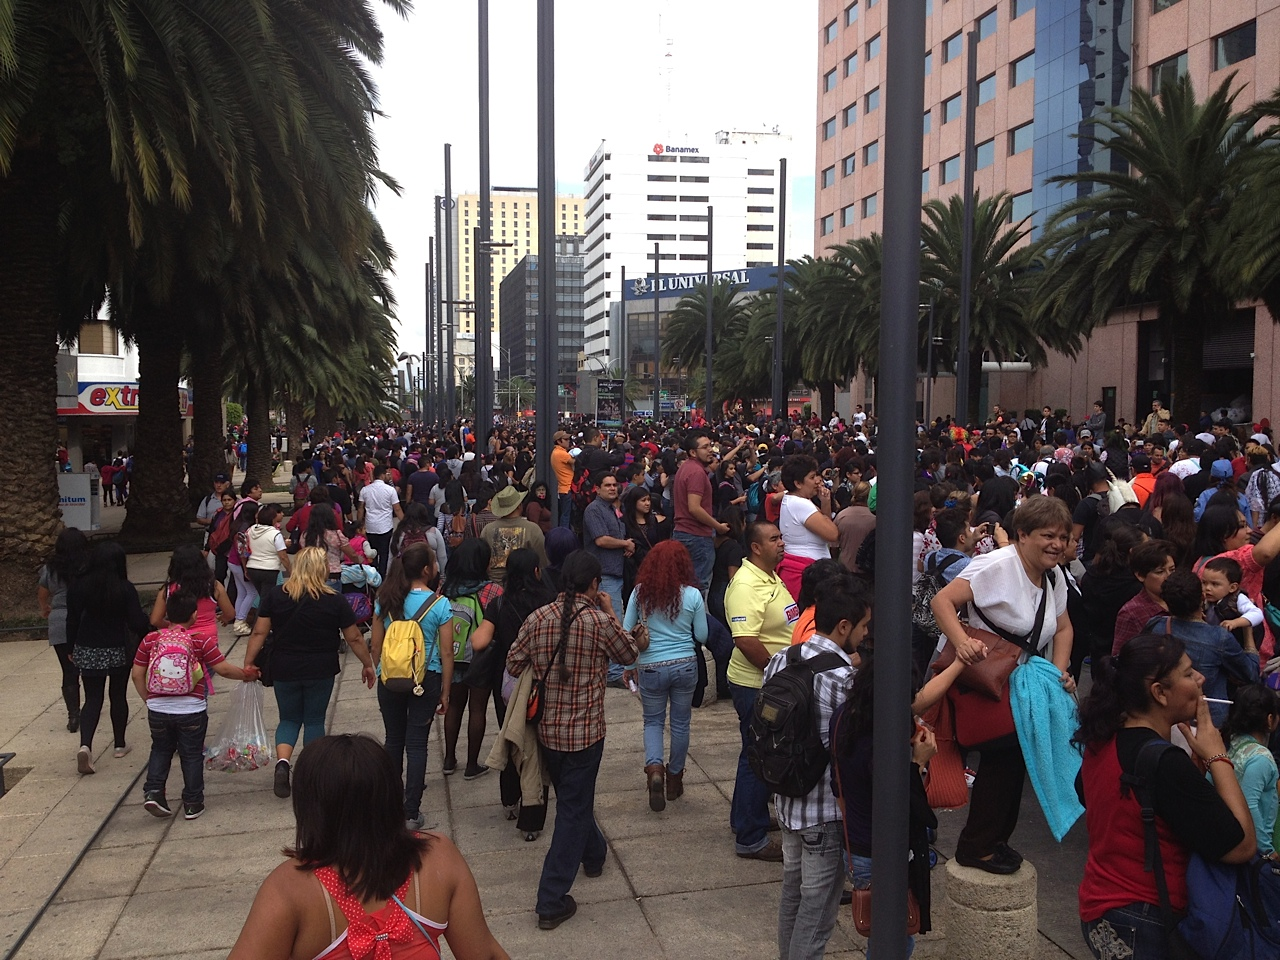 People trying to get to and from Monumento a la Revolucion plaza for a major event.